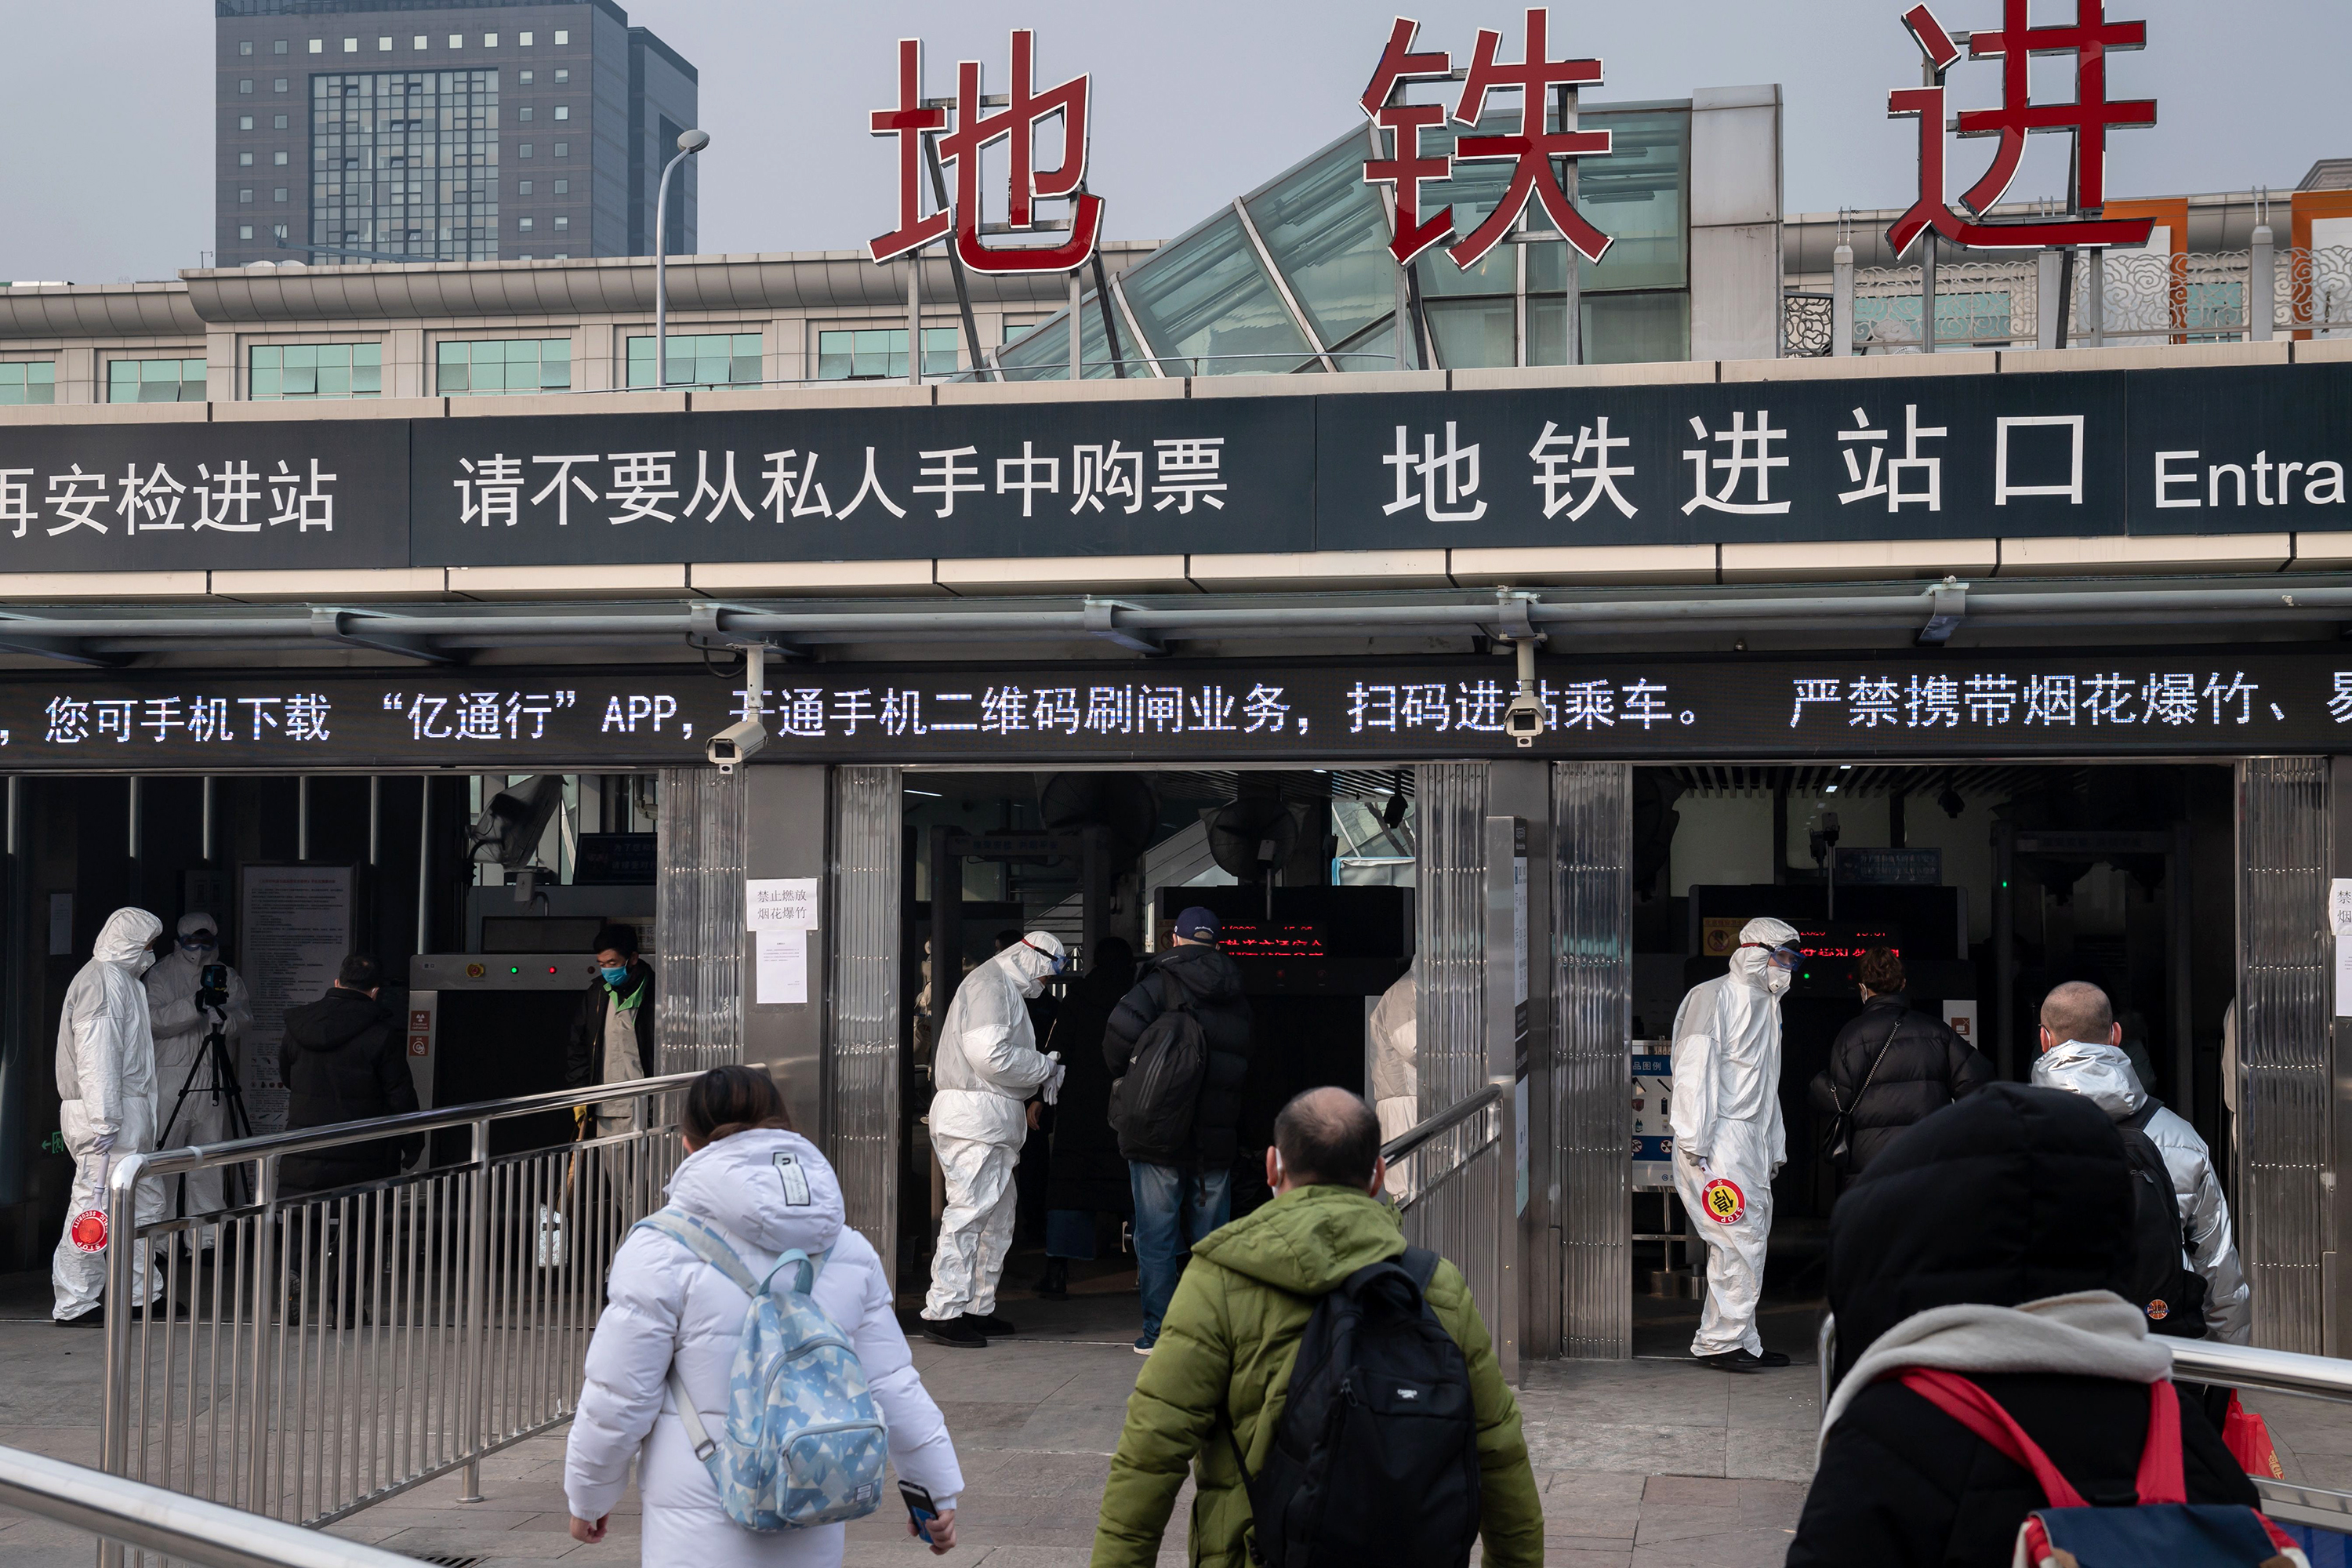 Security personnel wearing protective clothing check the temperature of people using portable devices and an advanced thermo camera (L) at a subway station entrance in Beijing on January 27.